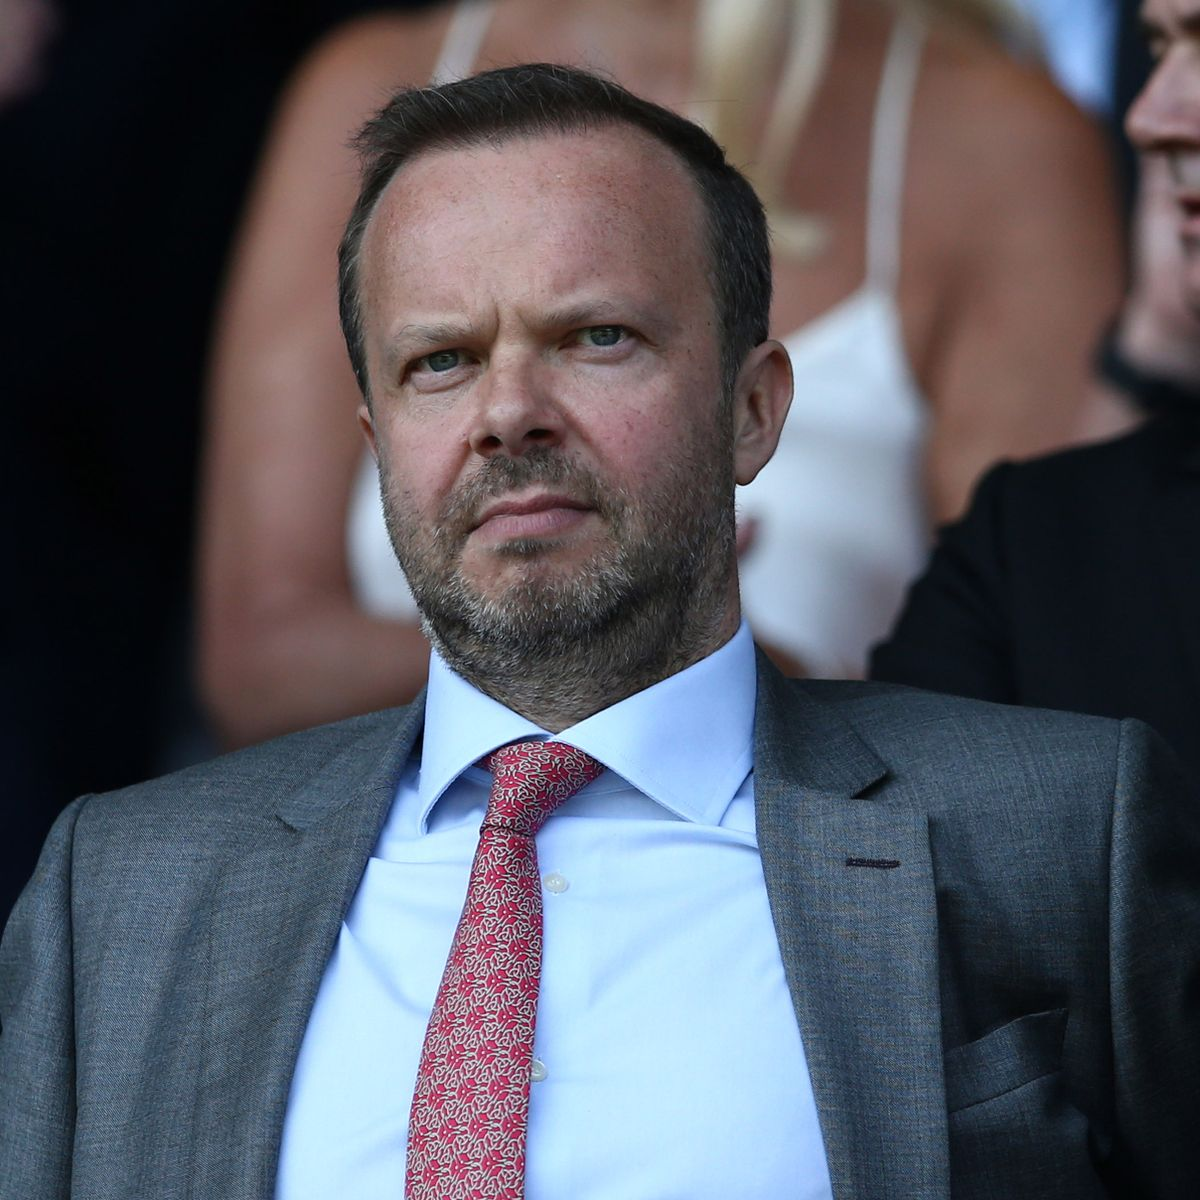 derek-chauvin-guilty-emmanuella-international-film-debut-ed-woodward-leaving-manchester-united-latest-news-global-world-stories-wednesday-april-2021-style-rave